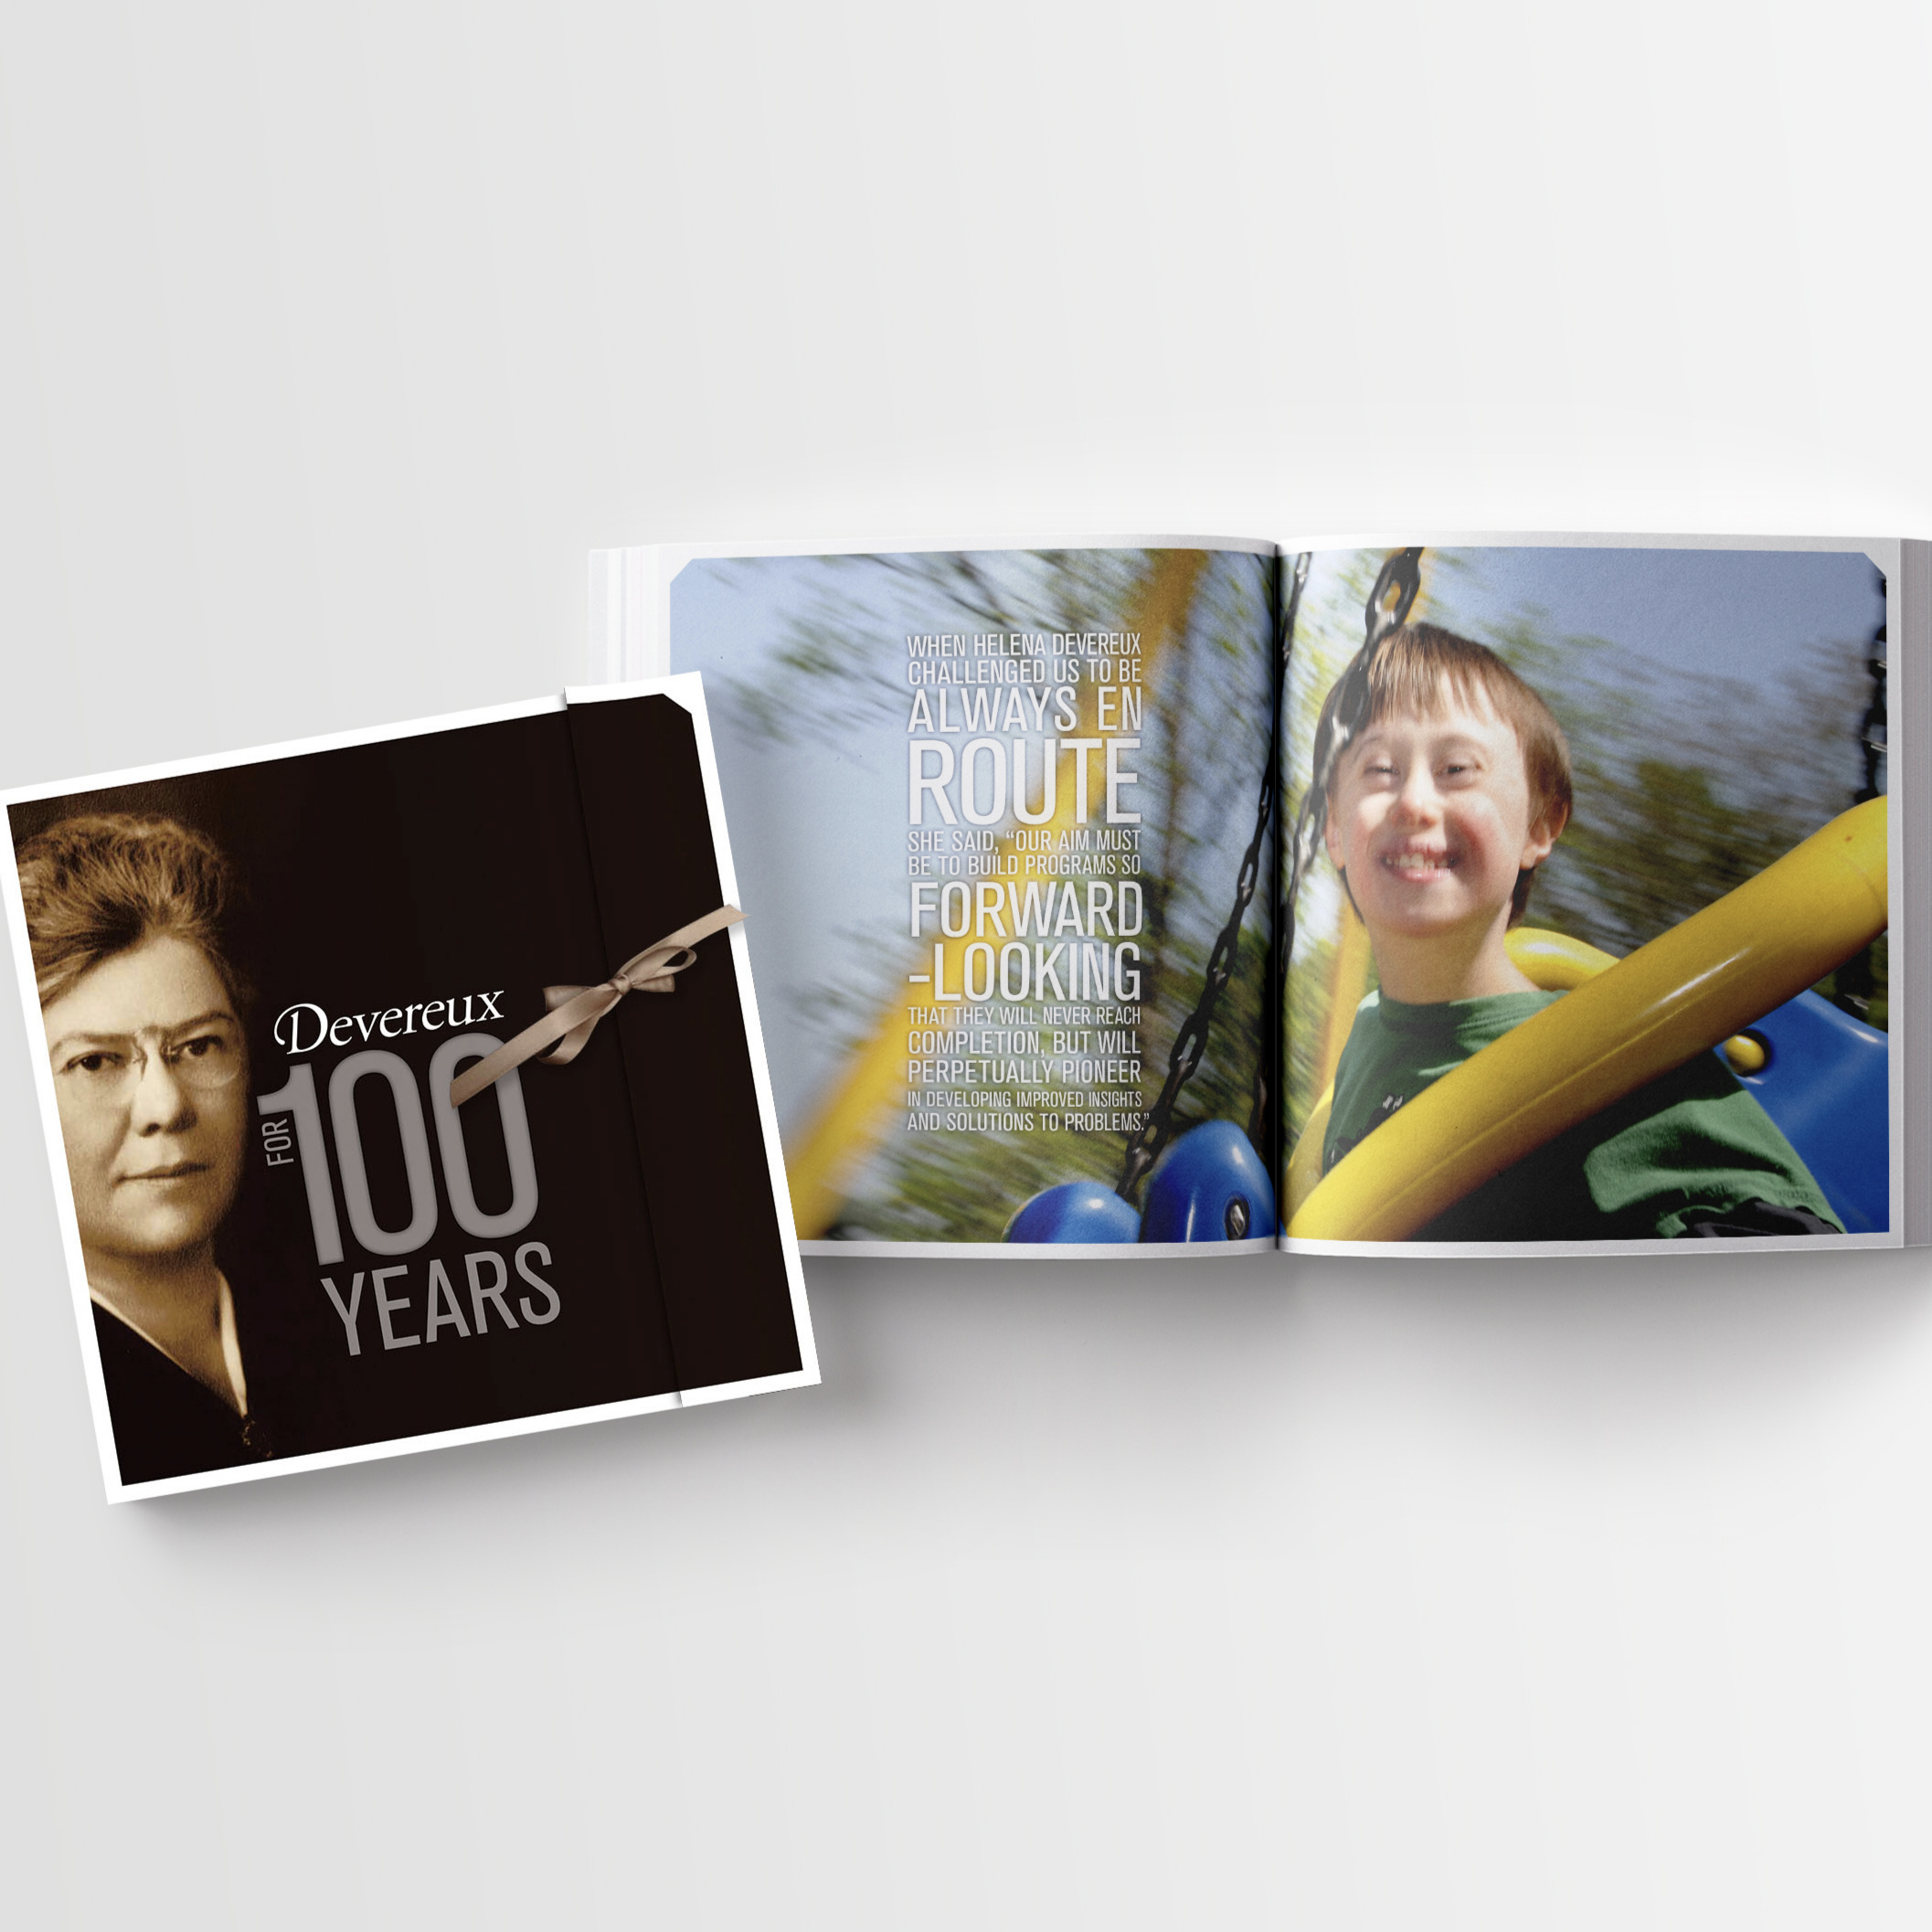 Devereux | 100th Anniversary Magazine